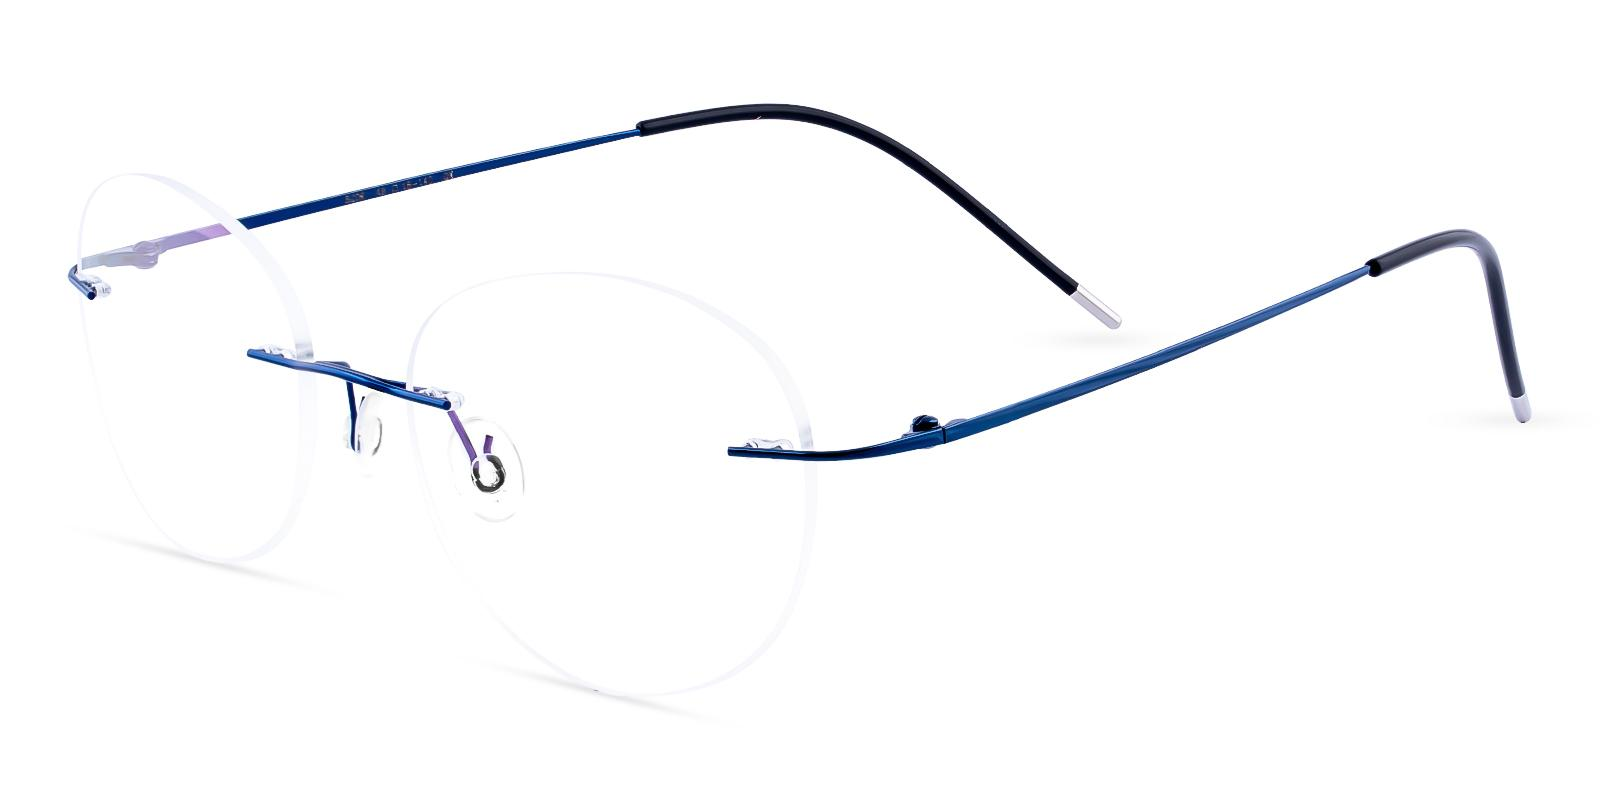 Terrace Park Blue Metal Eyeglasses , NosePads Frames from ABBE Glasses